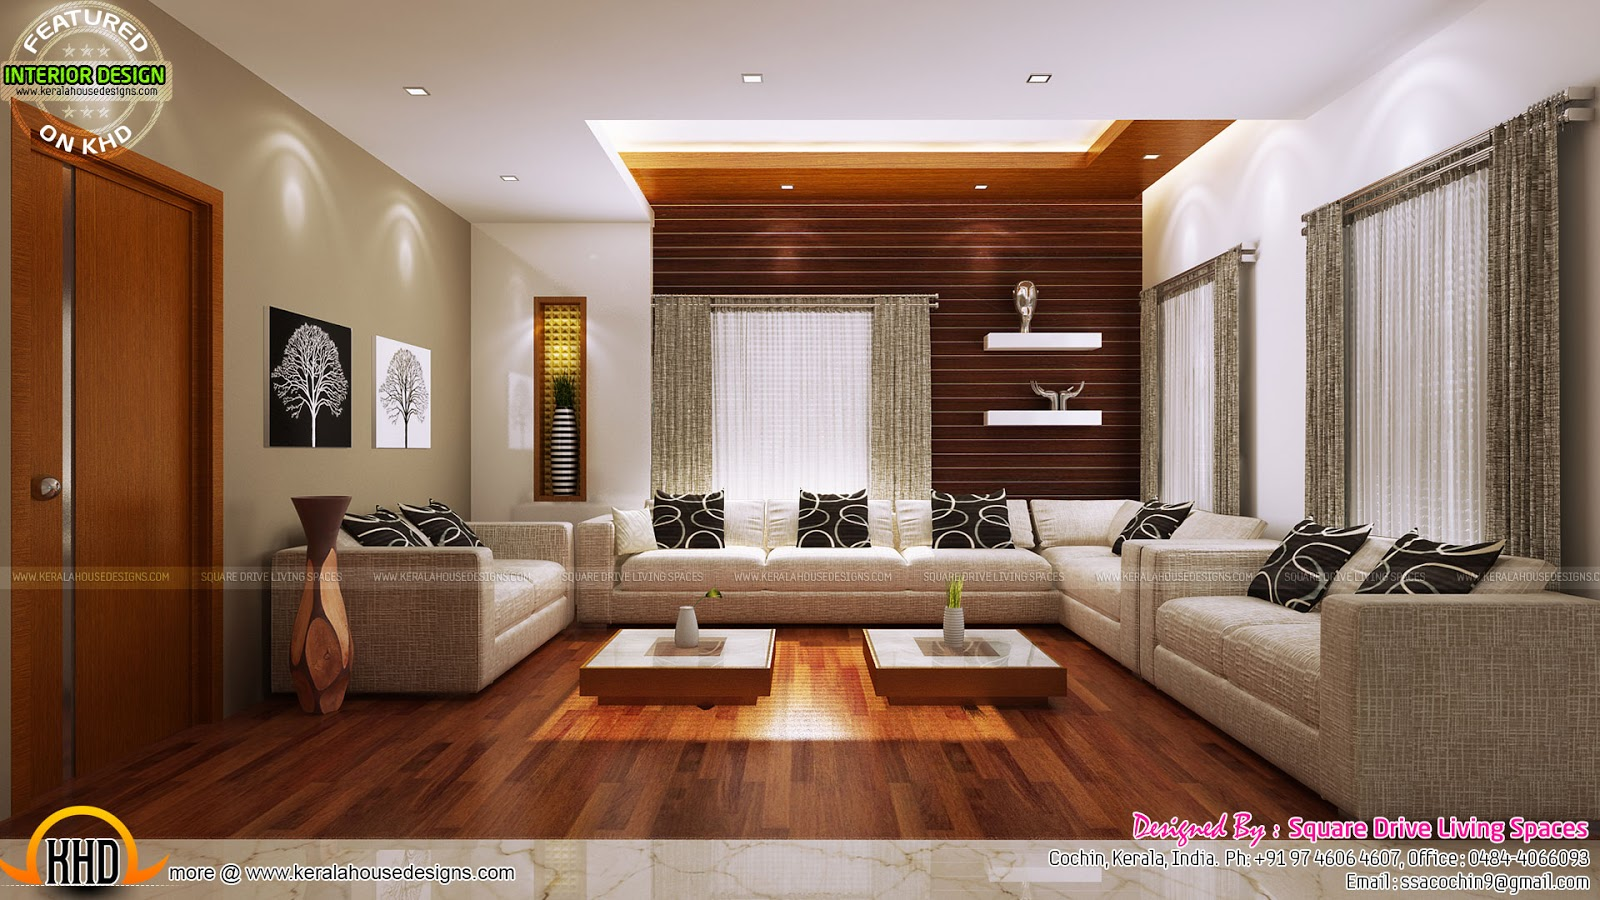 Excellent kerala interior design kerala home design and - Interior home design pic ...